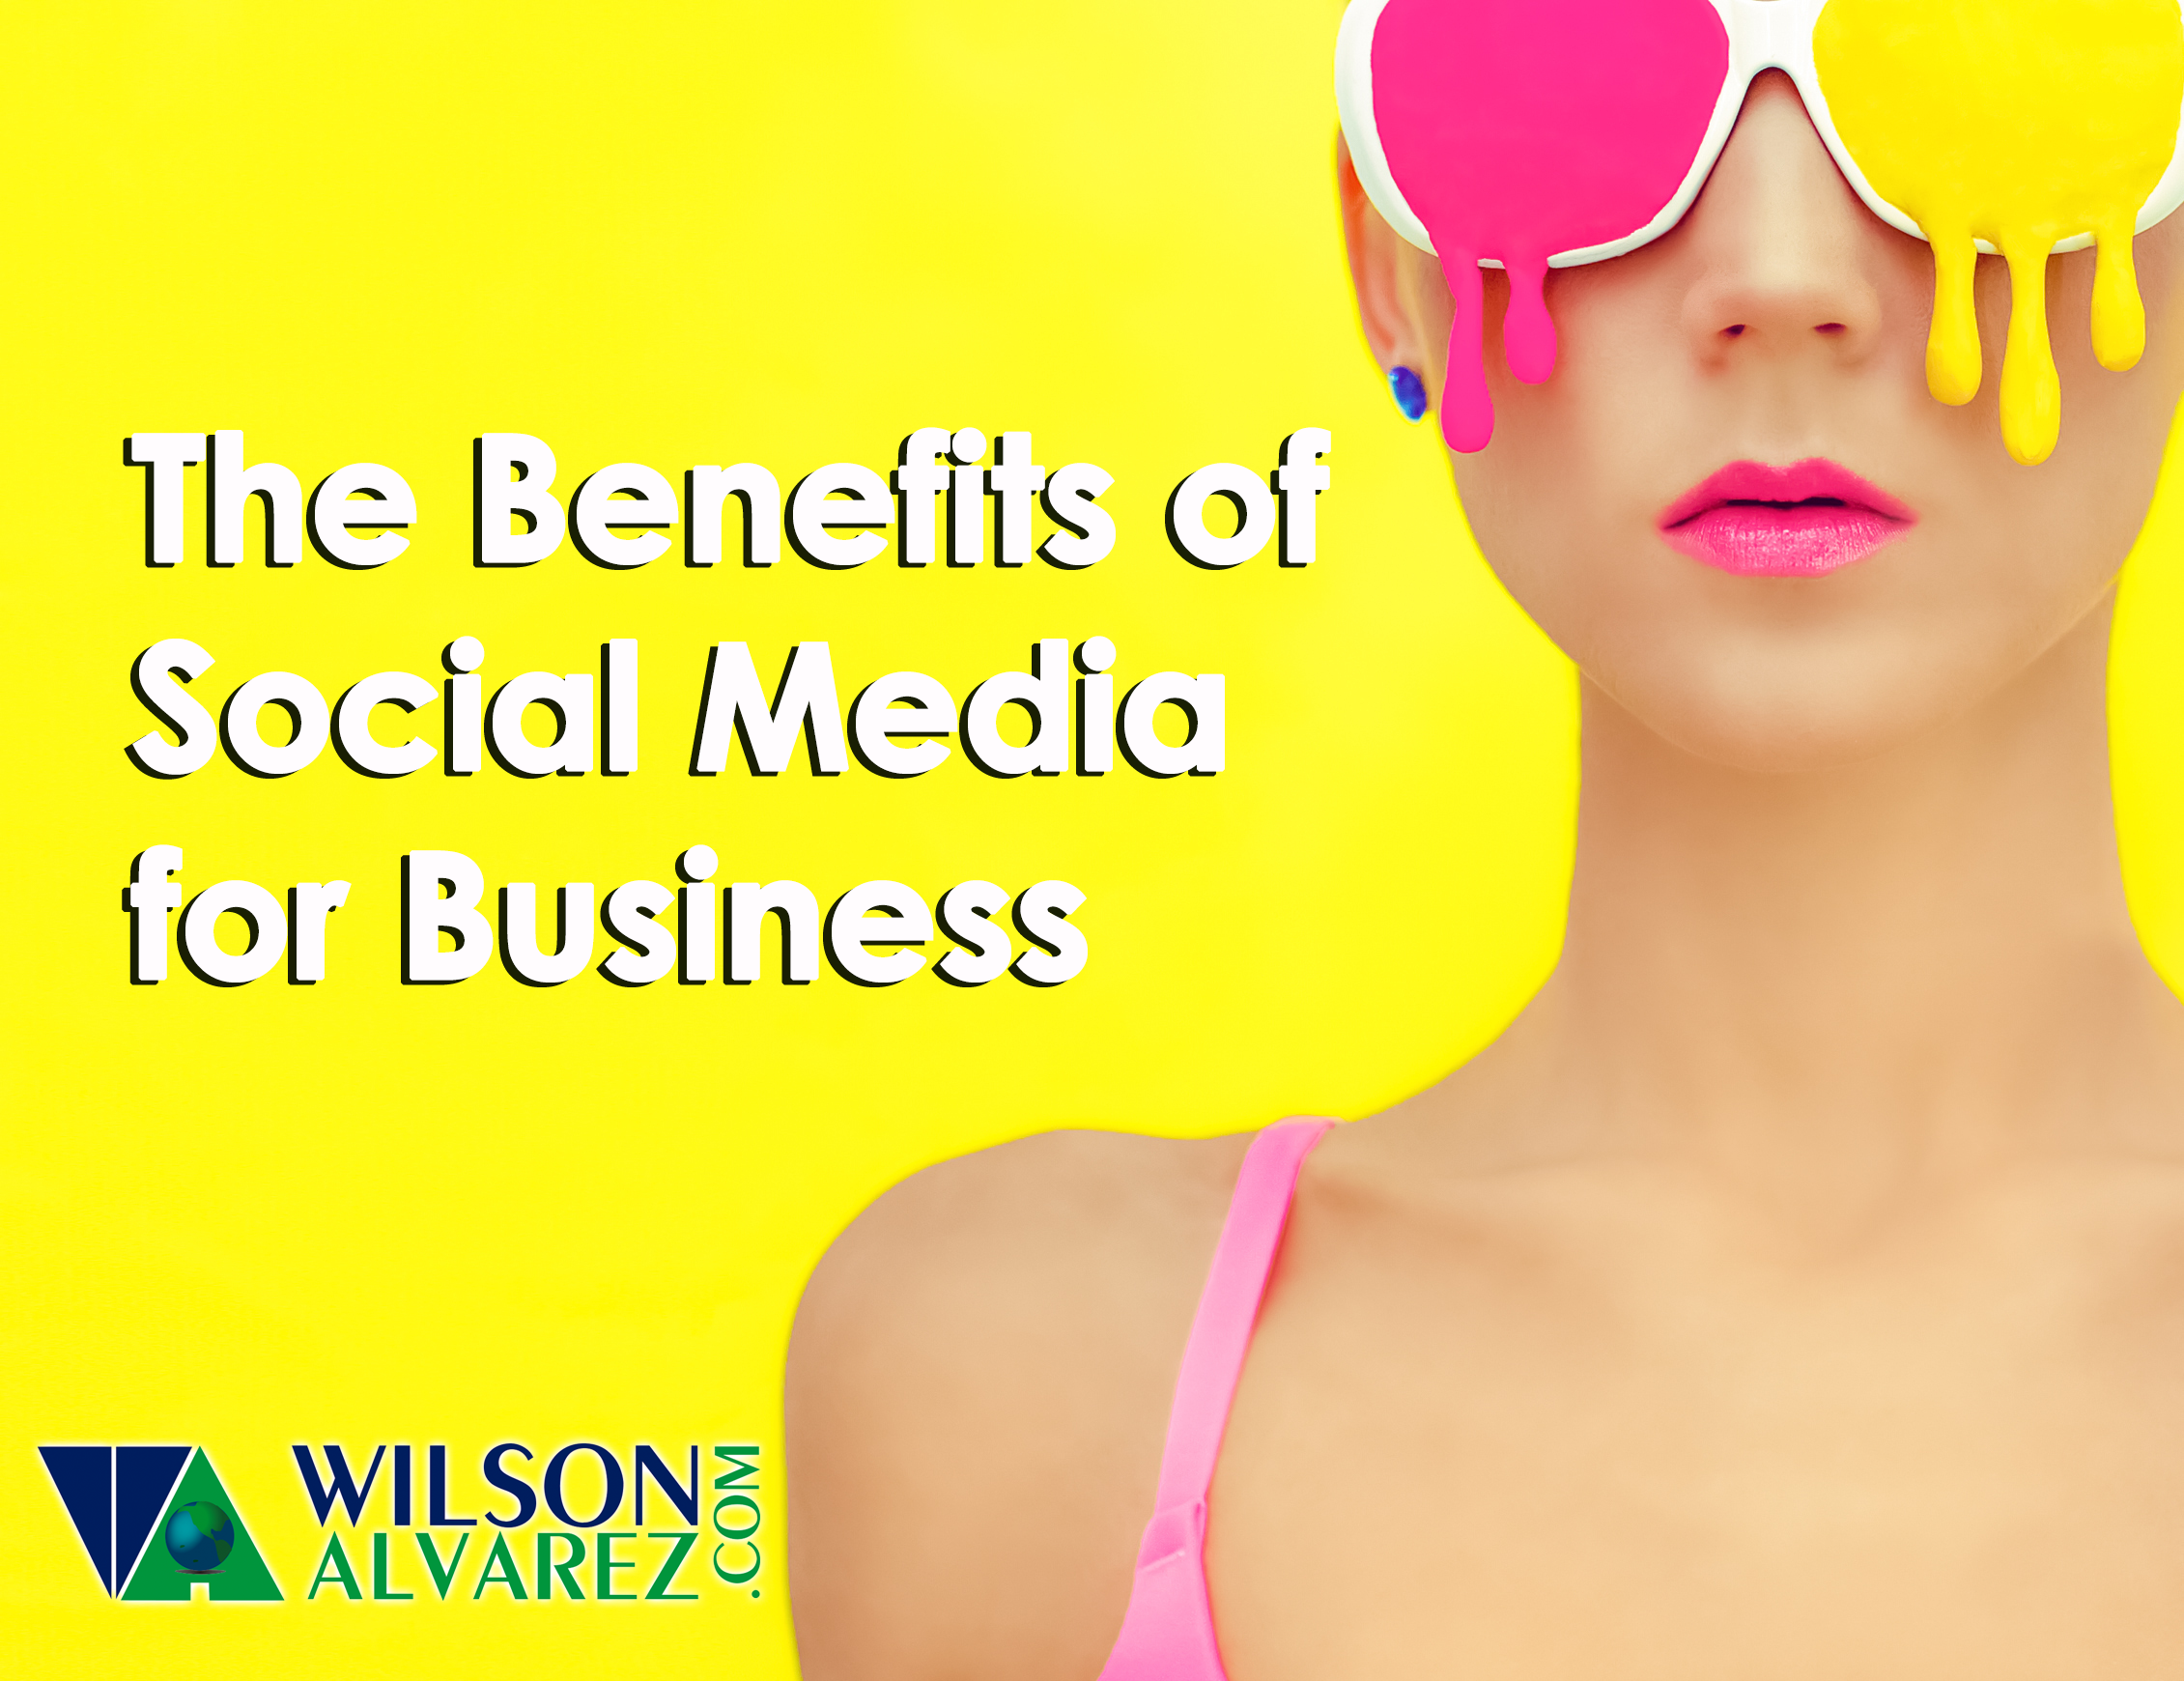 The Benefits of Social Media for Business